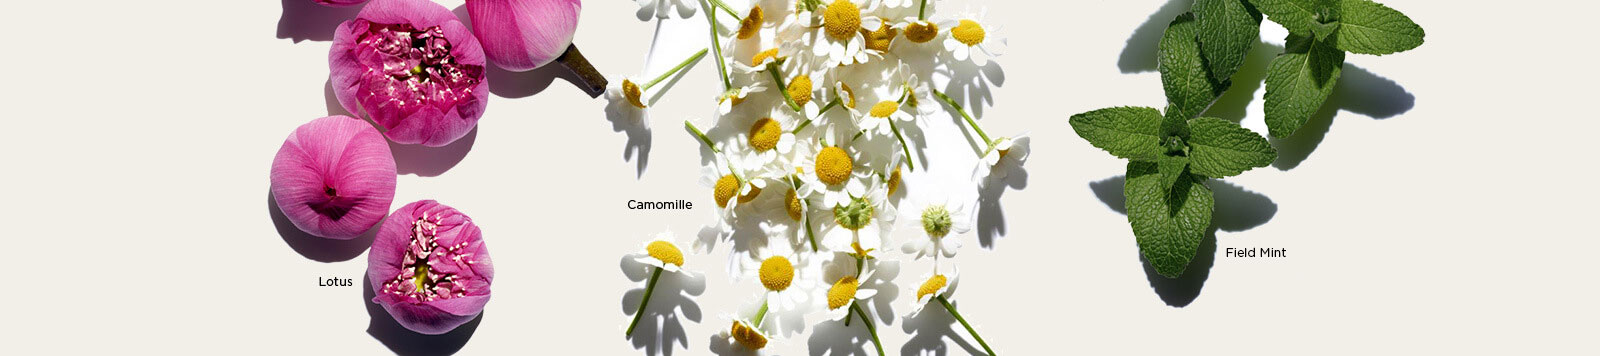 Images of Lotus, Camomile, and Field Mint ingredients